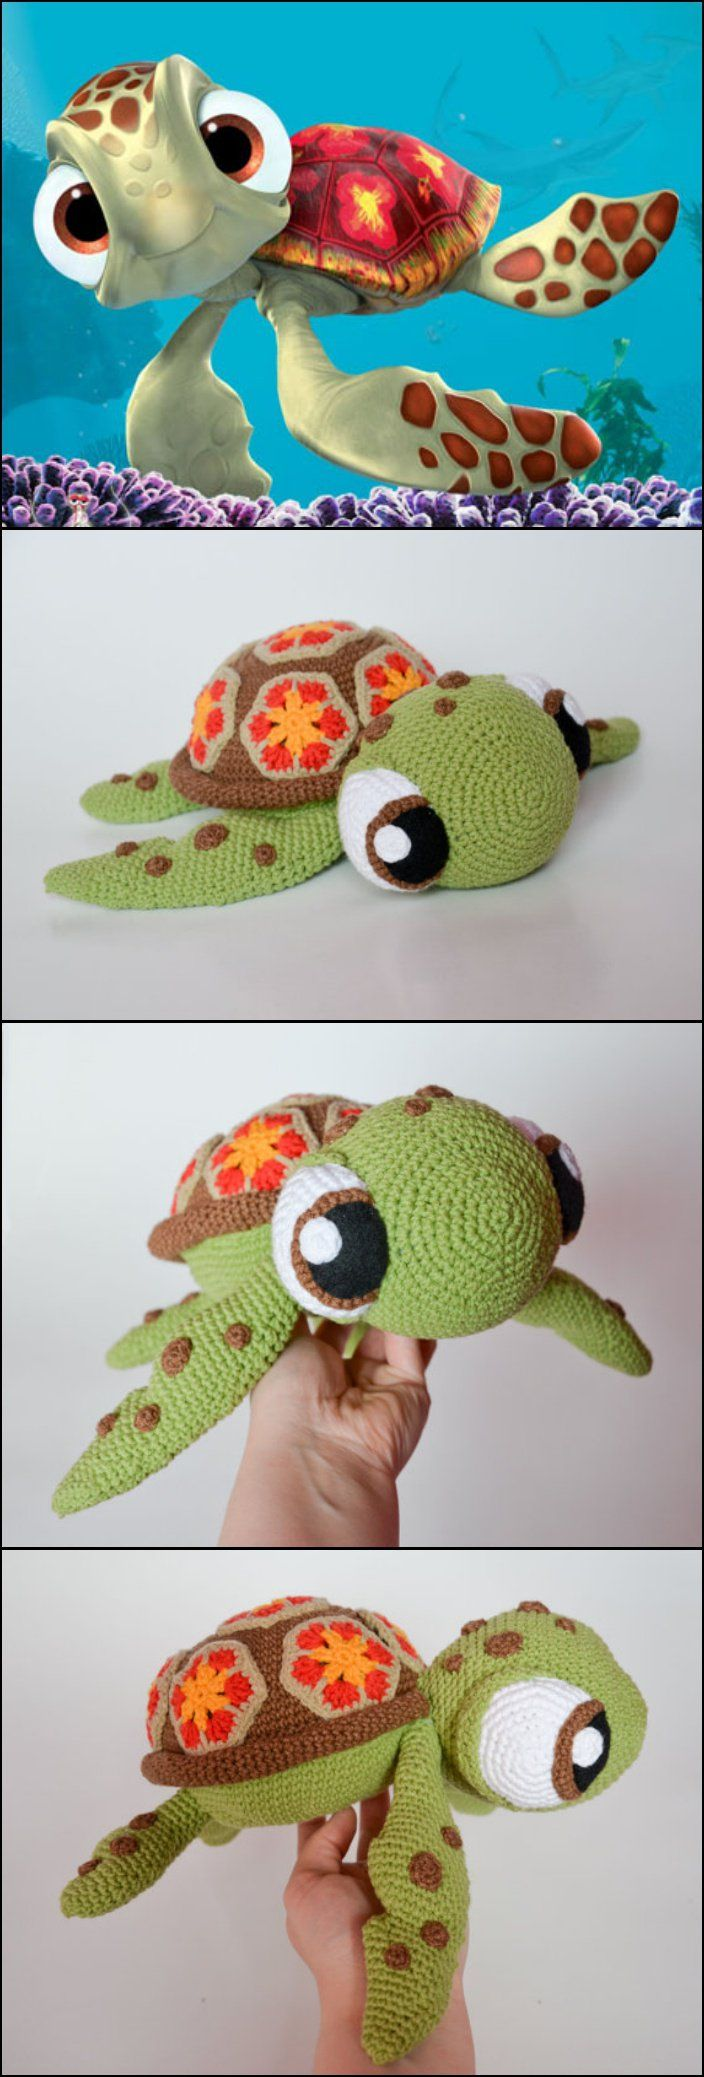 Finding Dory Crochet Patterns                                                                                                                                                                                 More